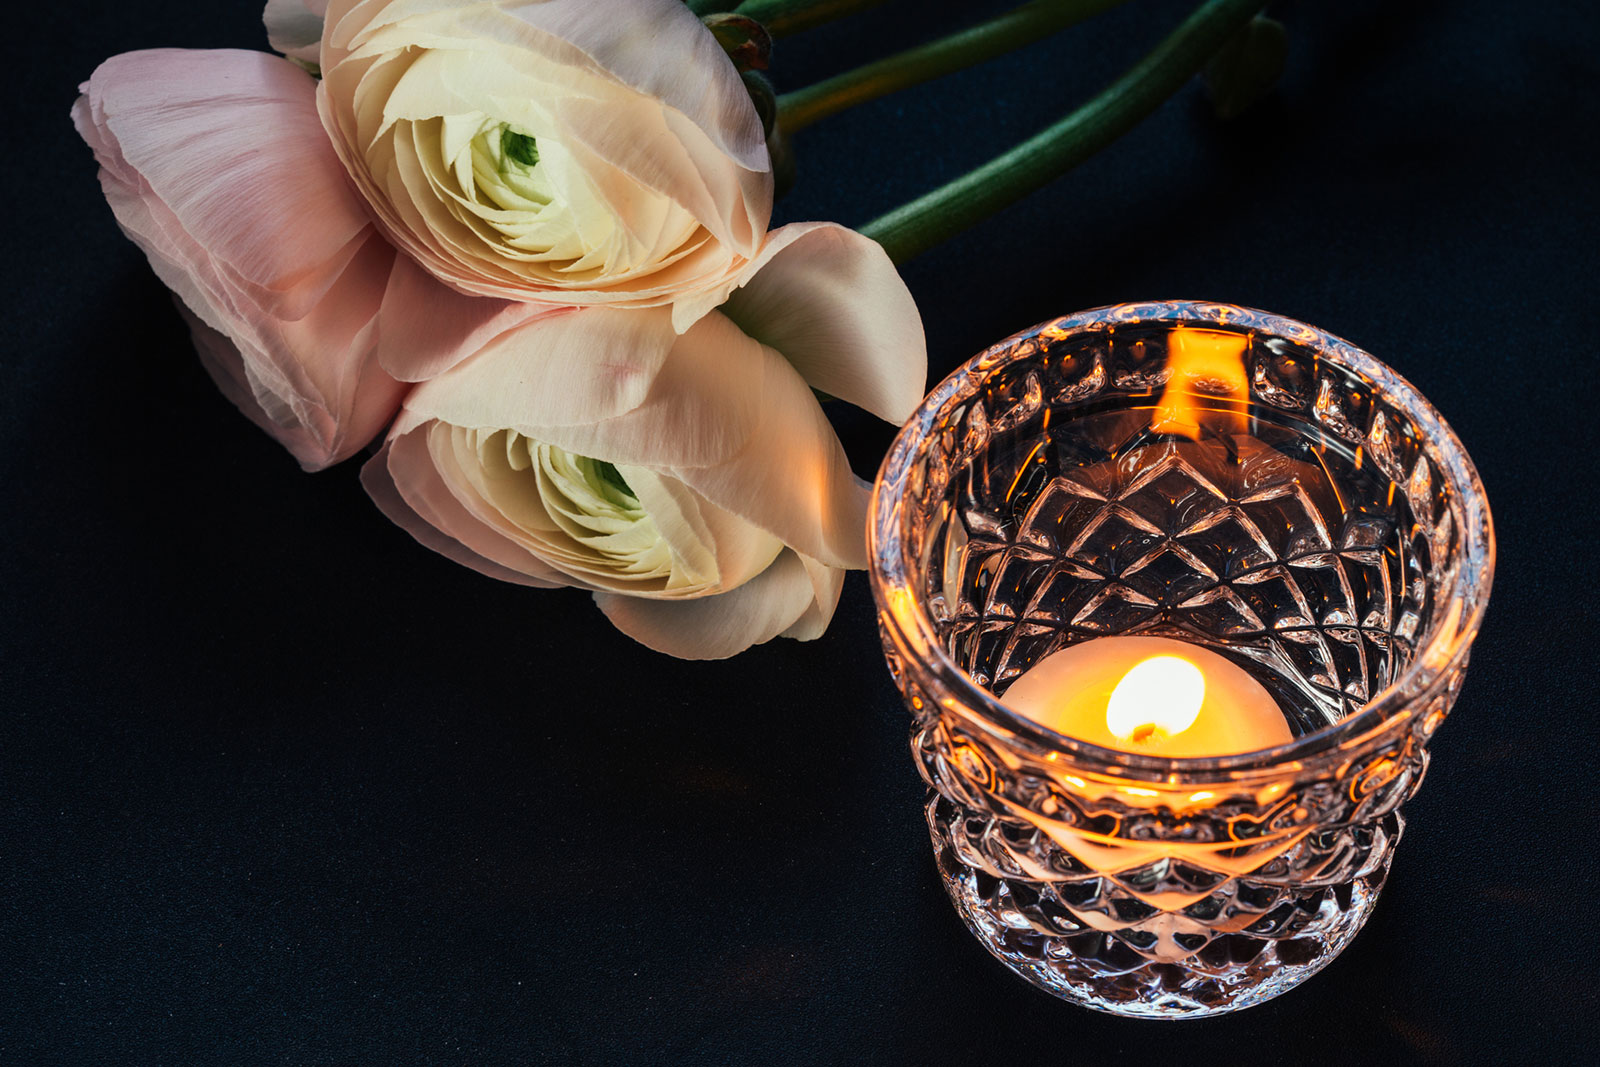 three-ranunculus-with-candle.jpg